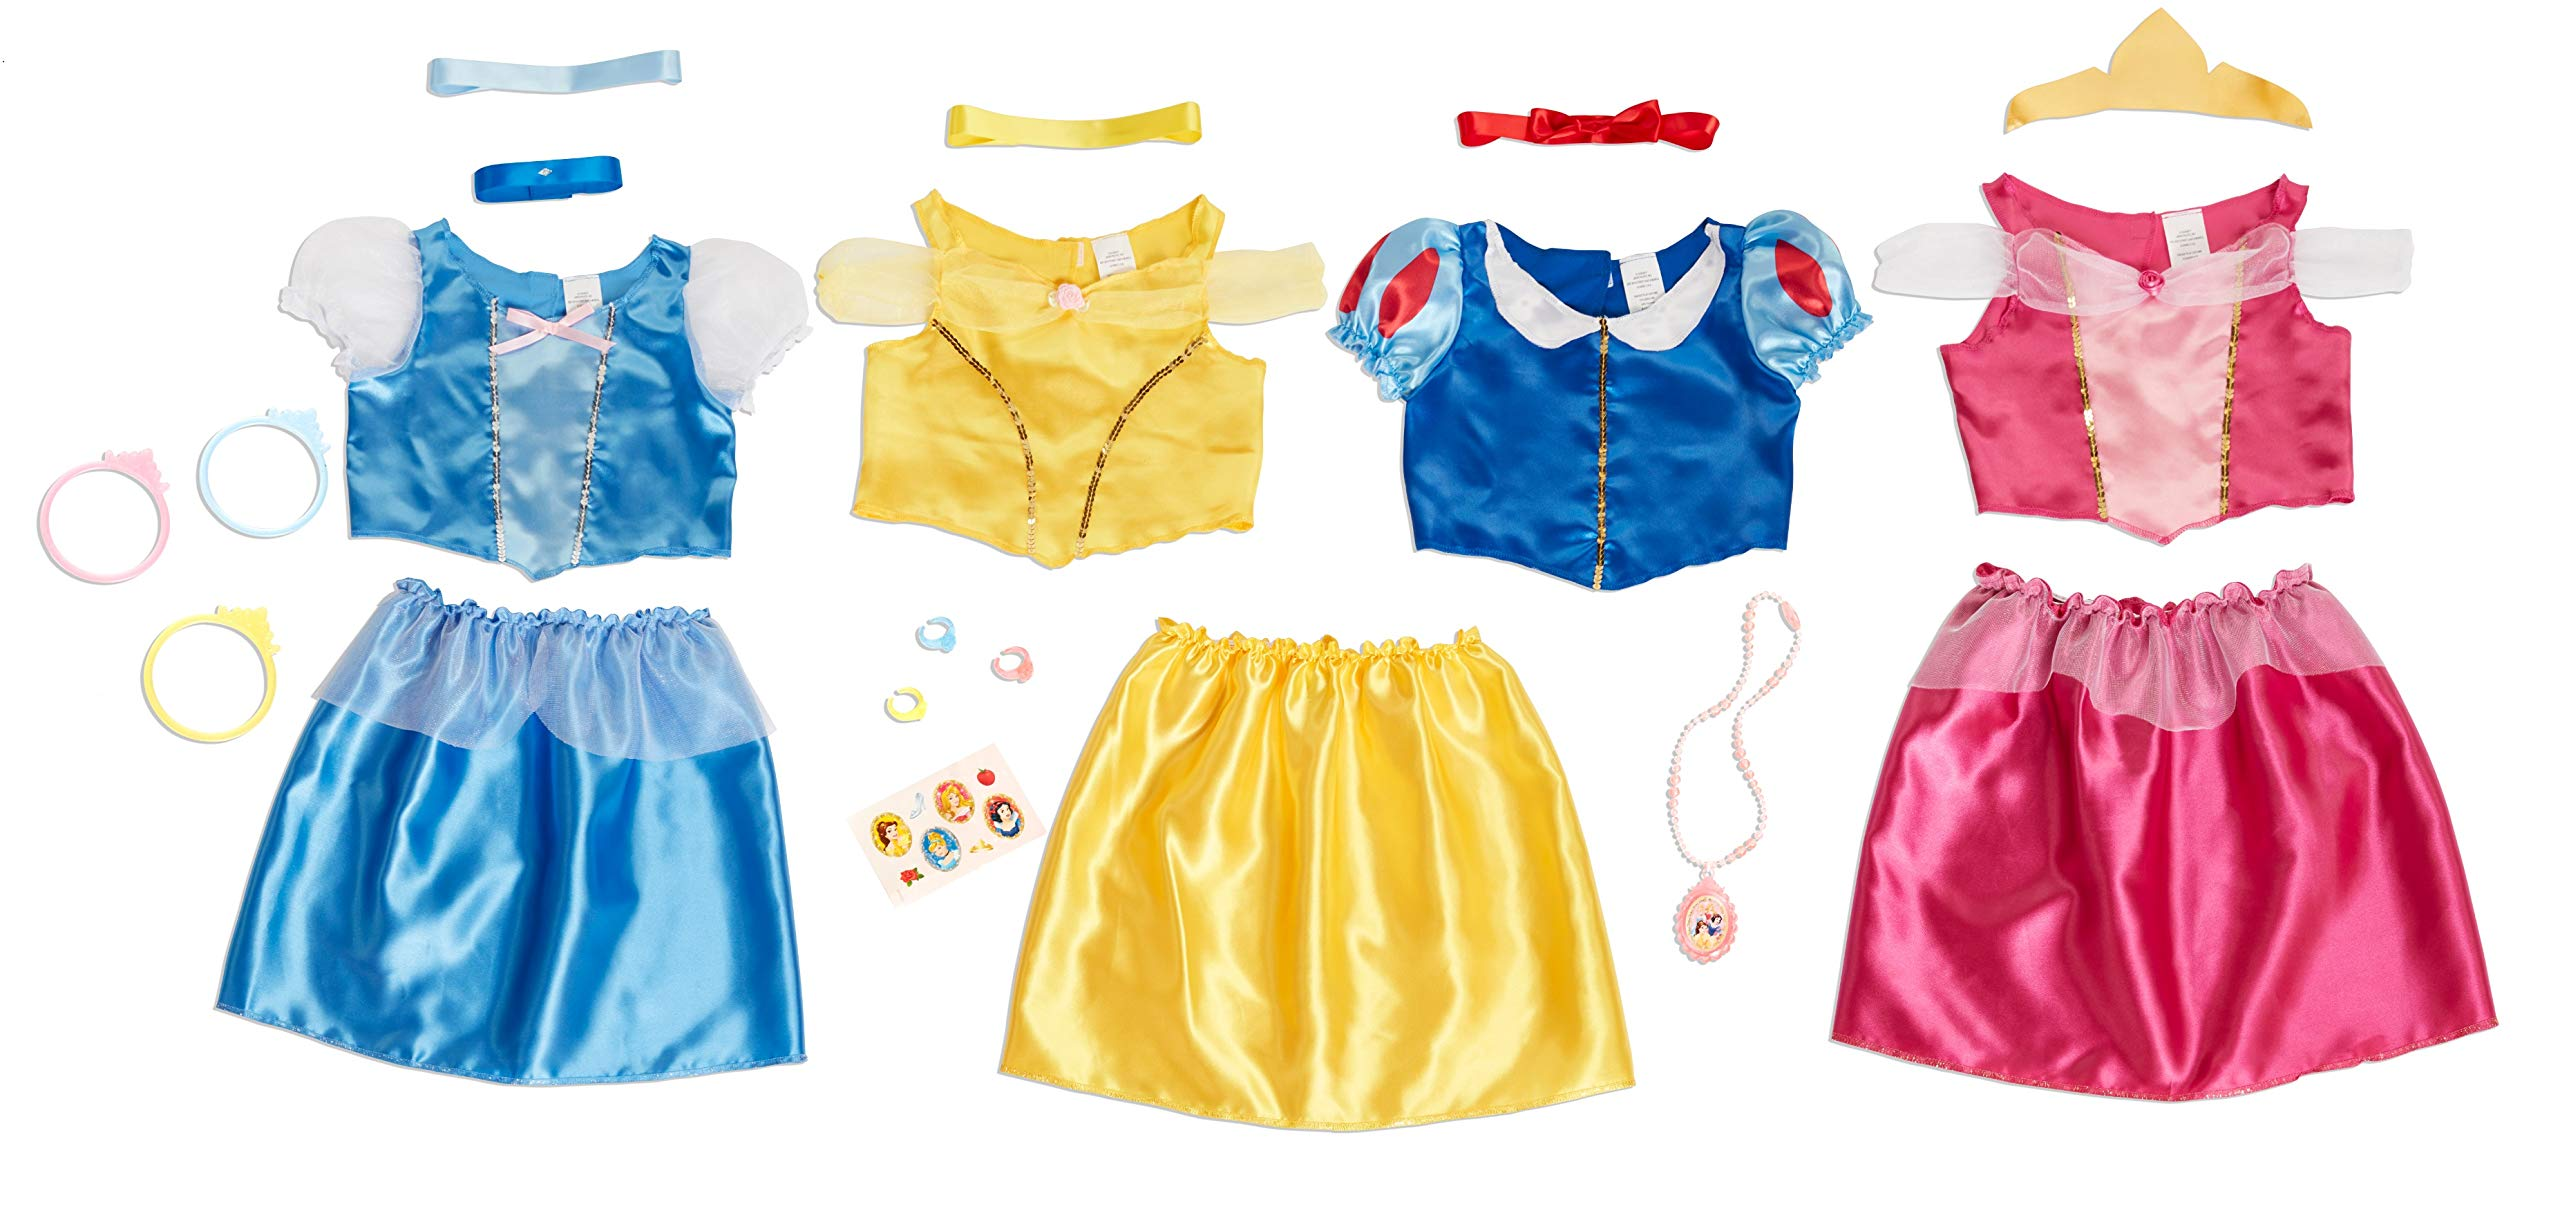 Disney Princess Your Costumes and Dress